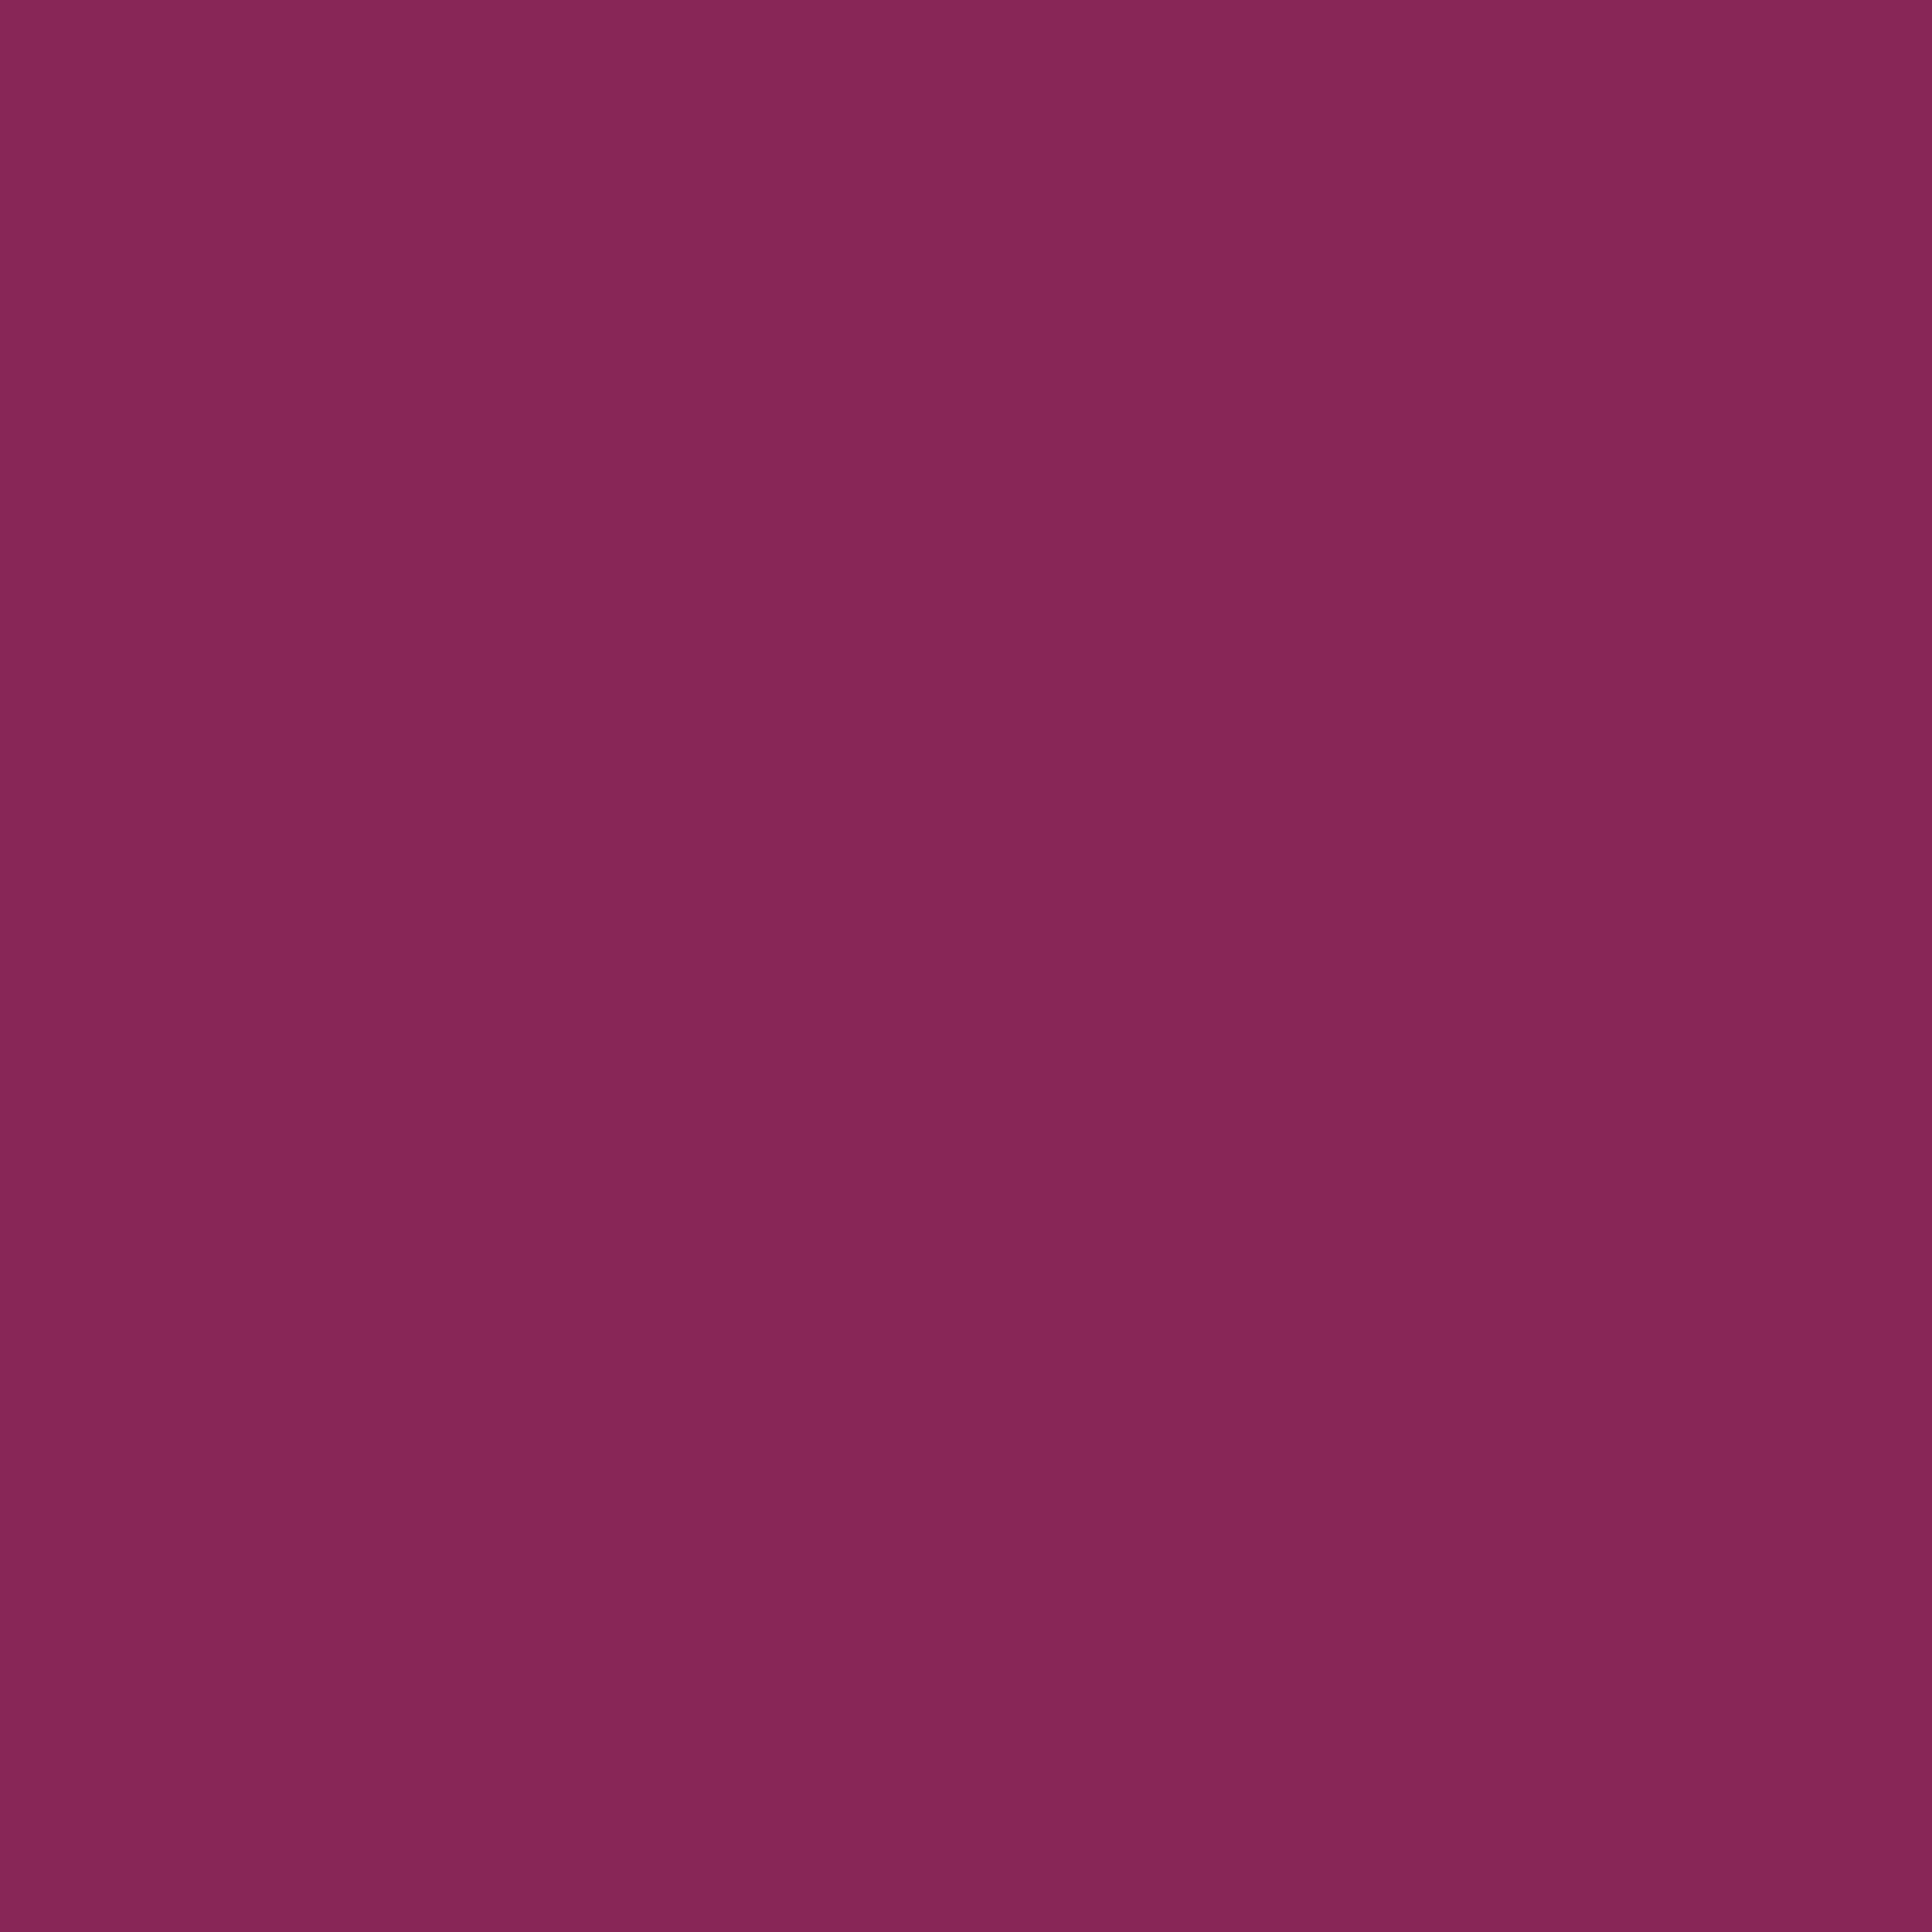 2048x2048 Dark Raspberry Solid Color Background